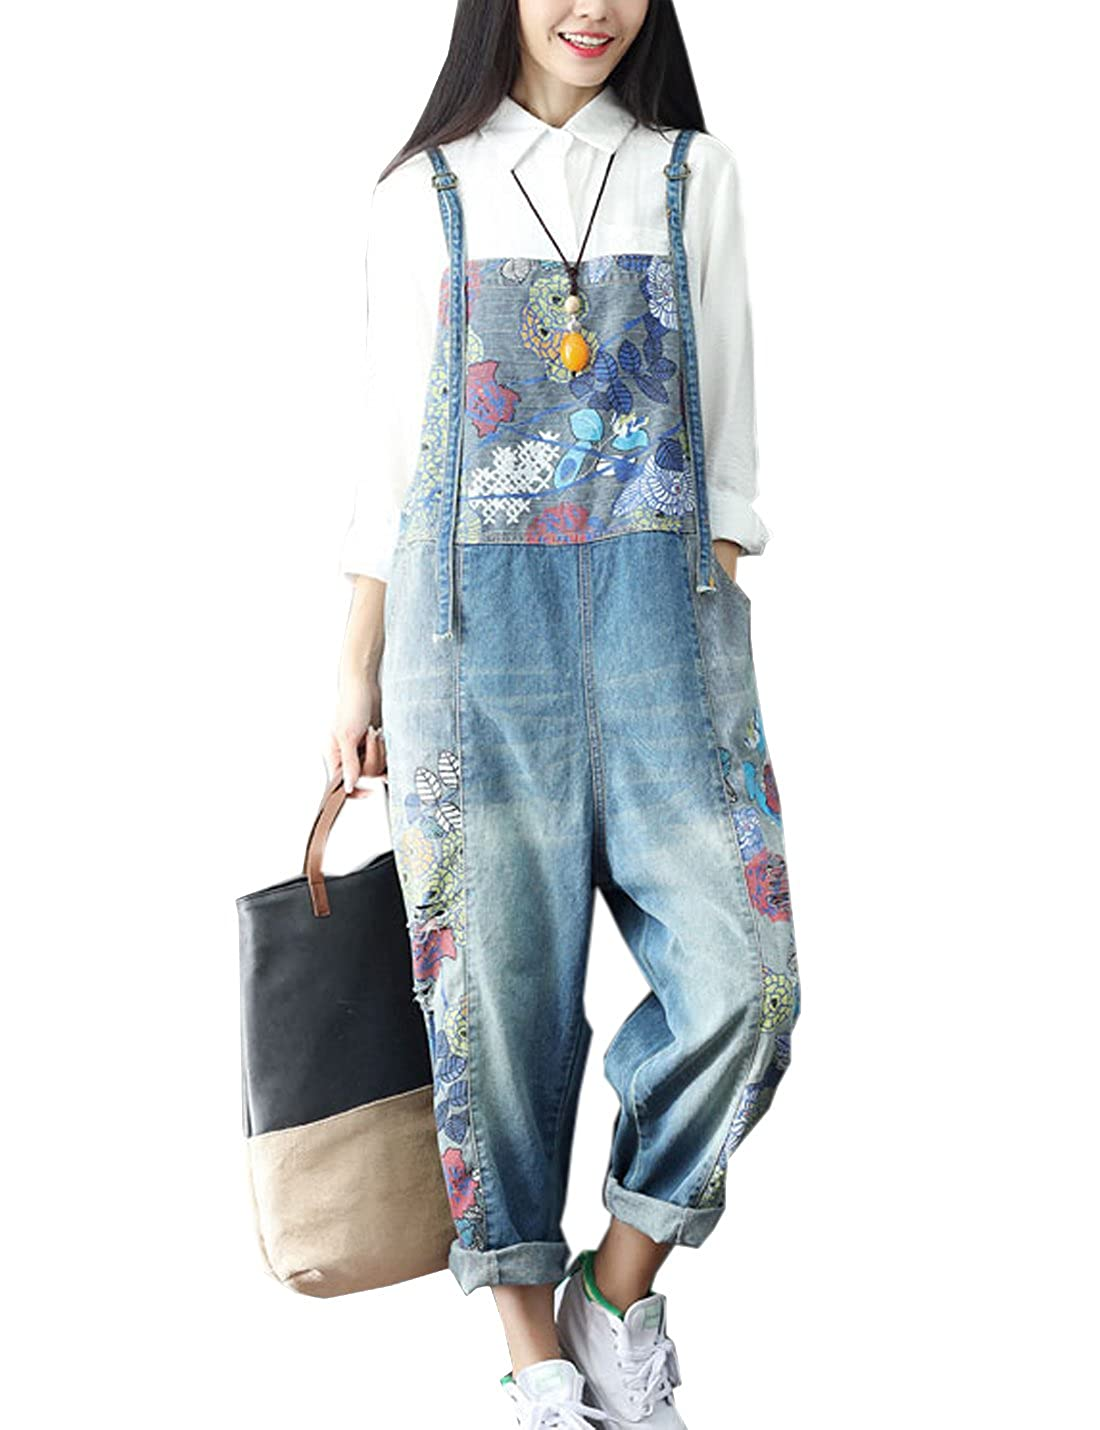 Flygo Women's Fashion Printed Drop Crotch Denim Bib Overalls Jumpsuits Harem Pants Blue)